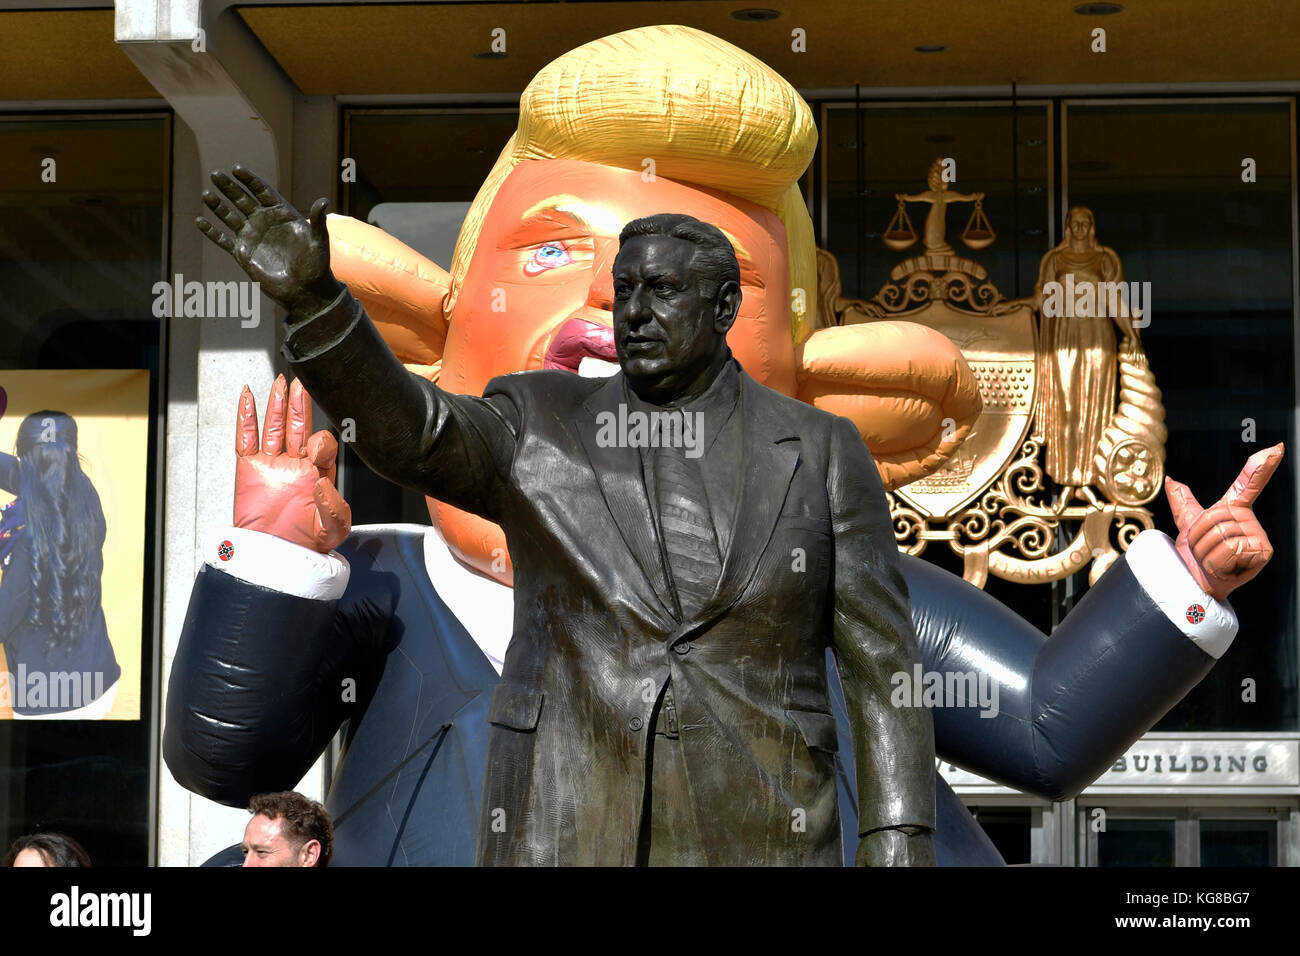 Philadelphia, United States. 04th Nov, 2017. 'Trump Rat' inflatable sculpture is erected behind the Frank - Stock Image